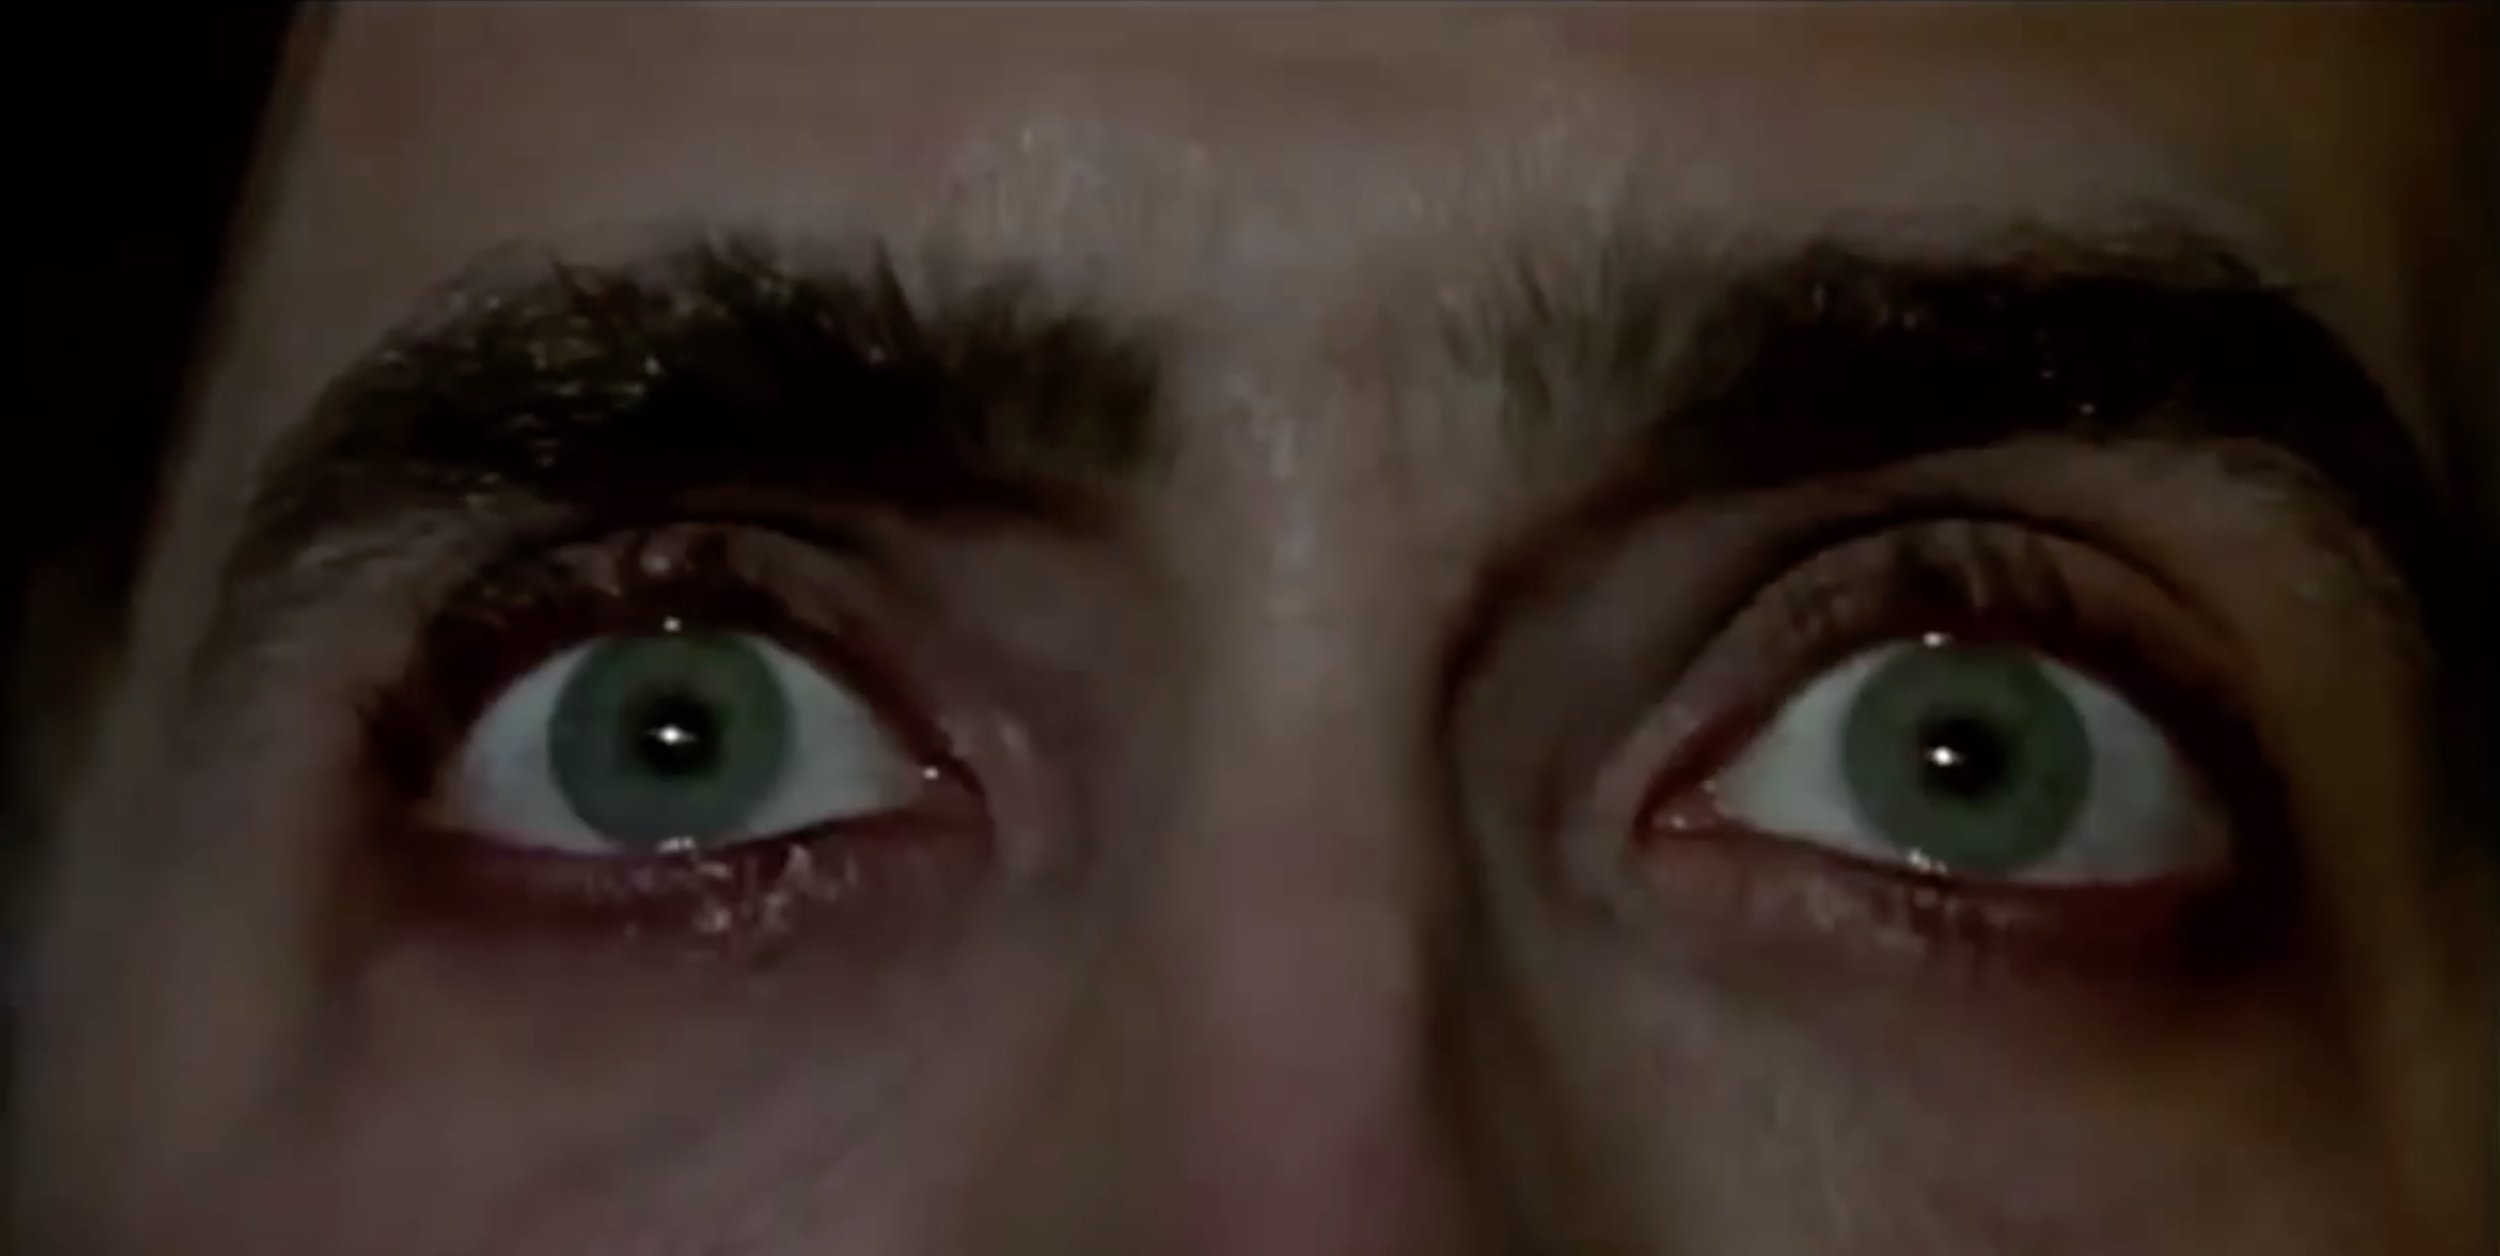 """Wow, you must've seen some things, huh?"" cuts directly into this shot of Cage's eyes."